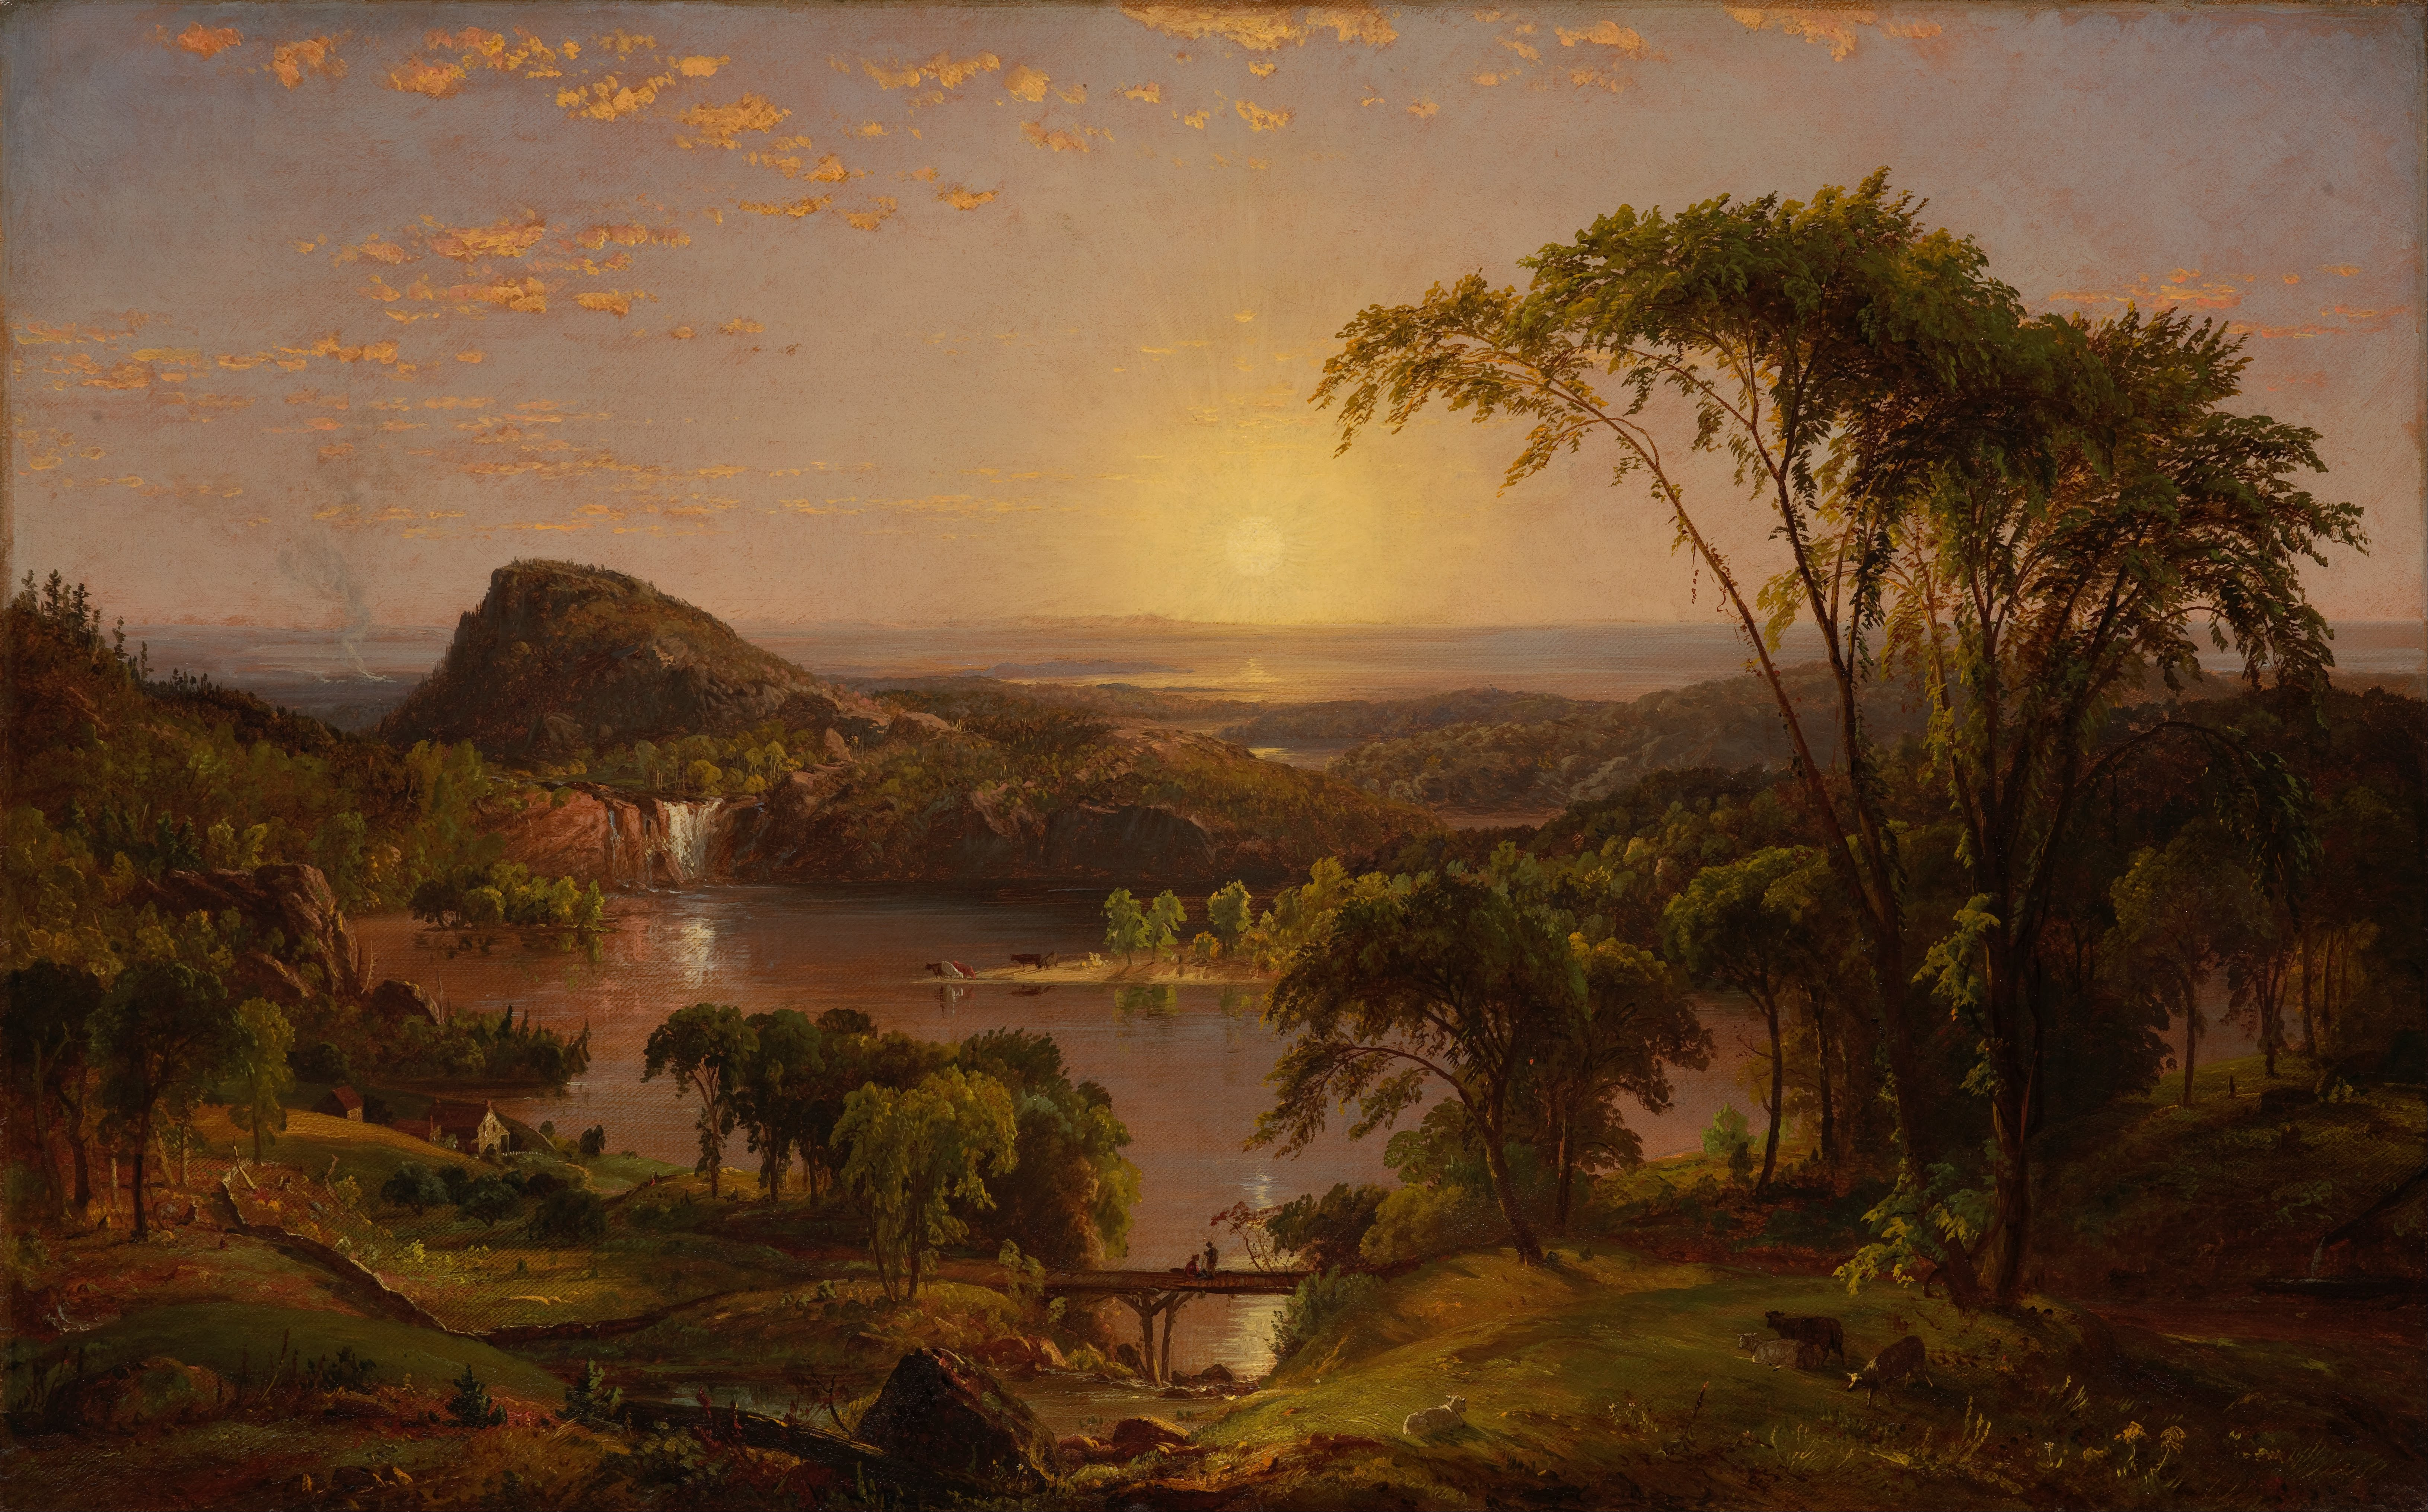 jasper f cropsey s american harvesting Jasper francis cropsey grew up on staten island, where he sketched landscapes from the window of his family's farmhouse he apprenticed to a new york architect and in the early 1840s established his own office (foshay and finney, jasper f cropsey, artist and architect, 1987)he completed several commissions but after a few years abandoned architecture in favor of landscape painting.